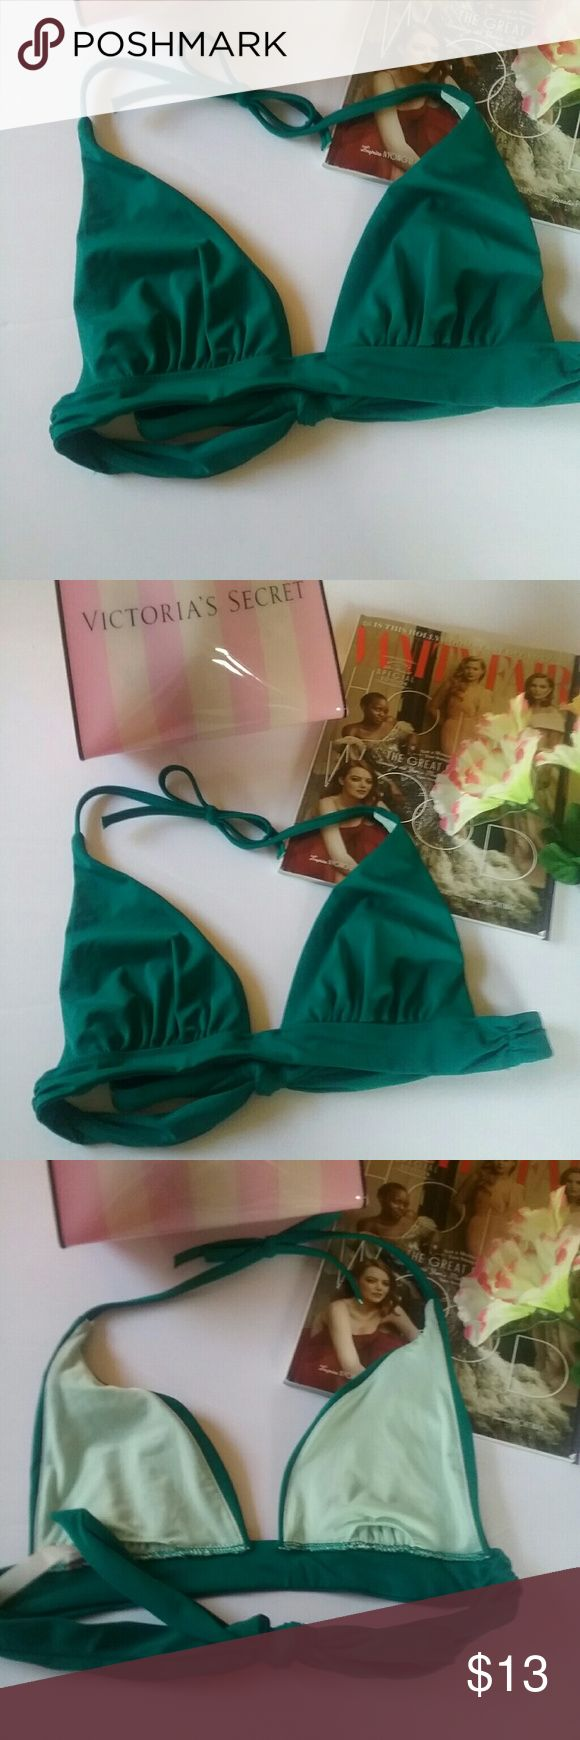 VICTORIAS SECRET EMERALD GREEN SWIM TOP MED This is a new Victoria's Secrets emerald green triangle bikini top. It does not have padding. It is a size medium. It is a Victoria's Secret Overstock so the store Tags have been removed but the size tag remains. Victorias Secret  Swim Bikinis